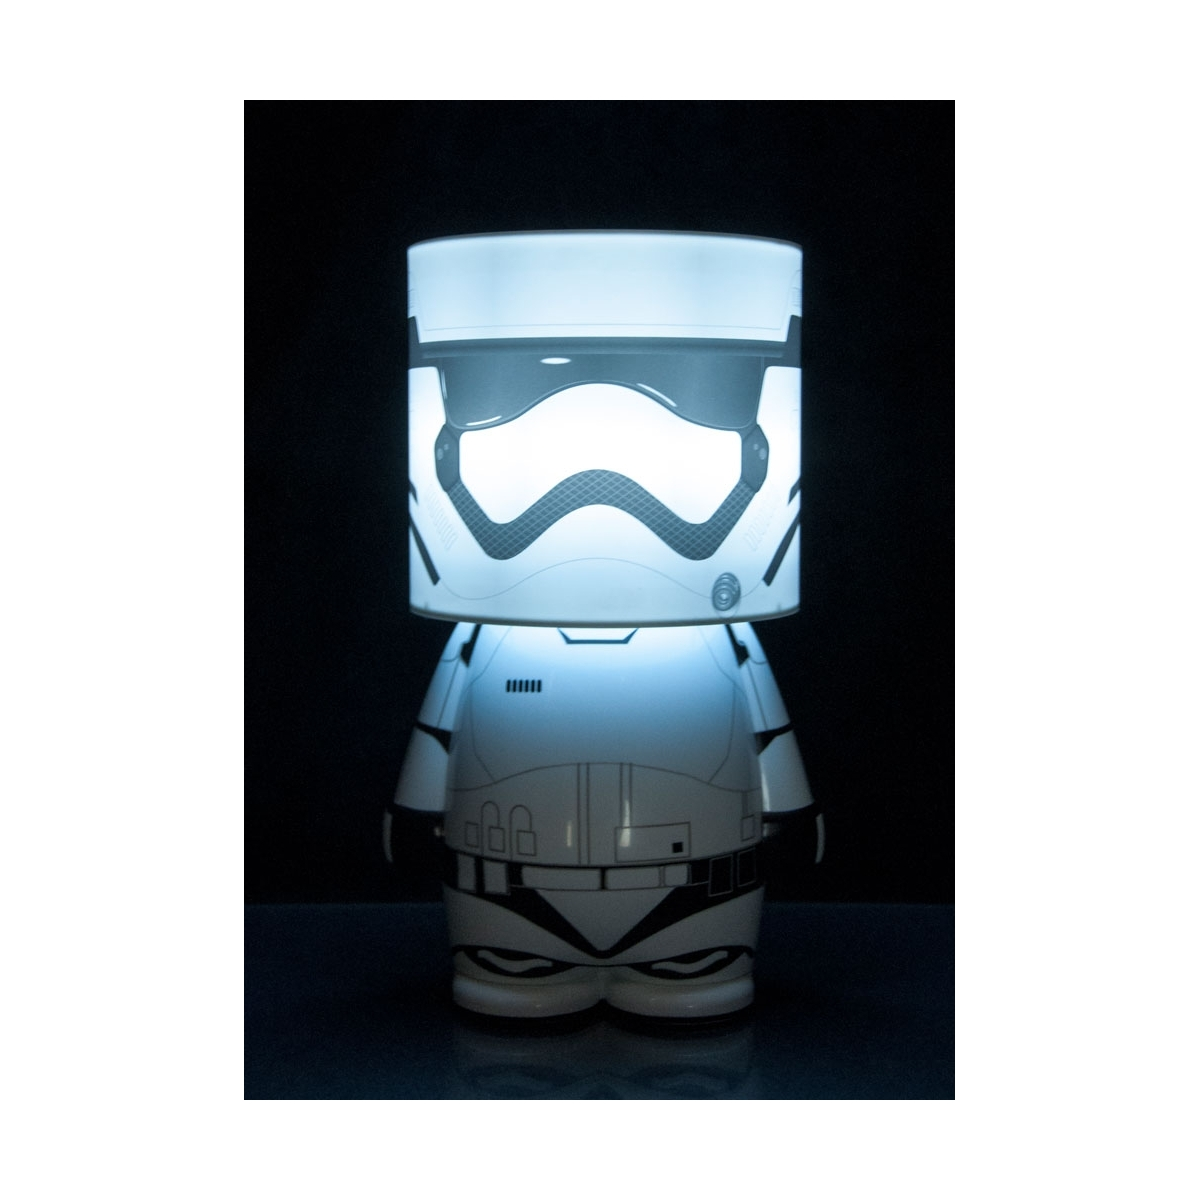 star wars episode vii lampe d 39 ambiance look alite led mood light first order stormtrooper 25. Black Bedroom Furniture Sets. Home Design Ideas